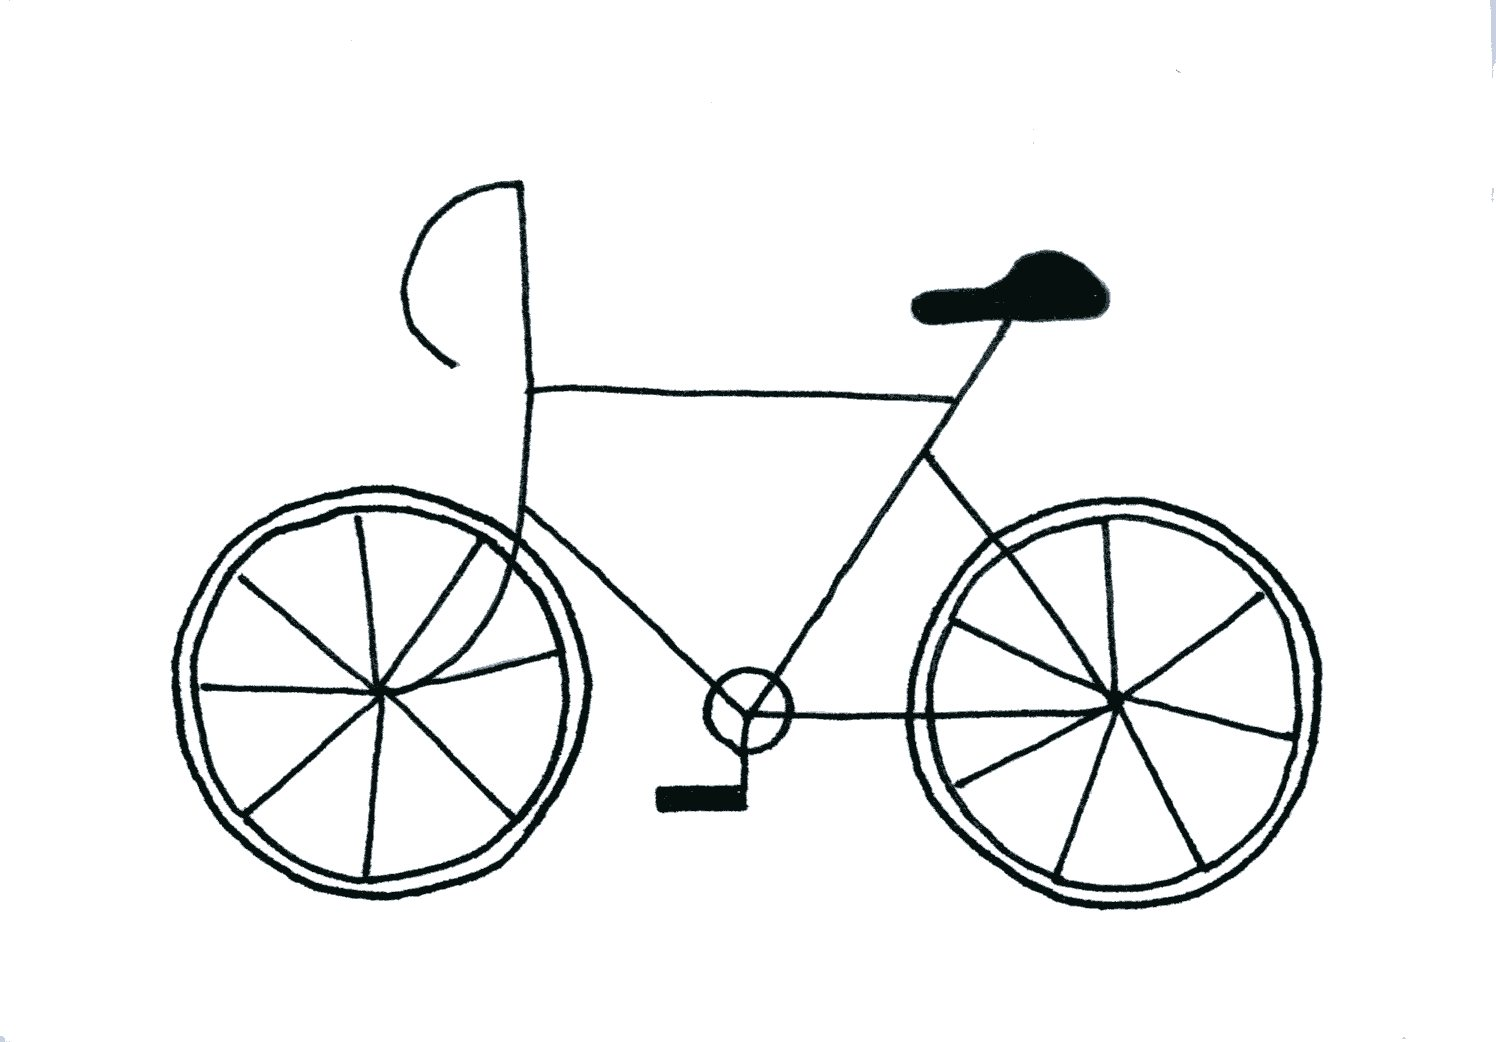 Drawn bicycle The Moon bike bicycle Scooter